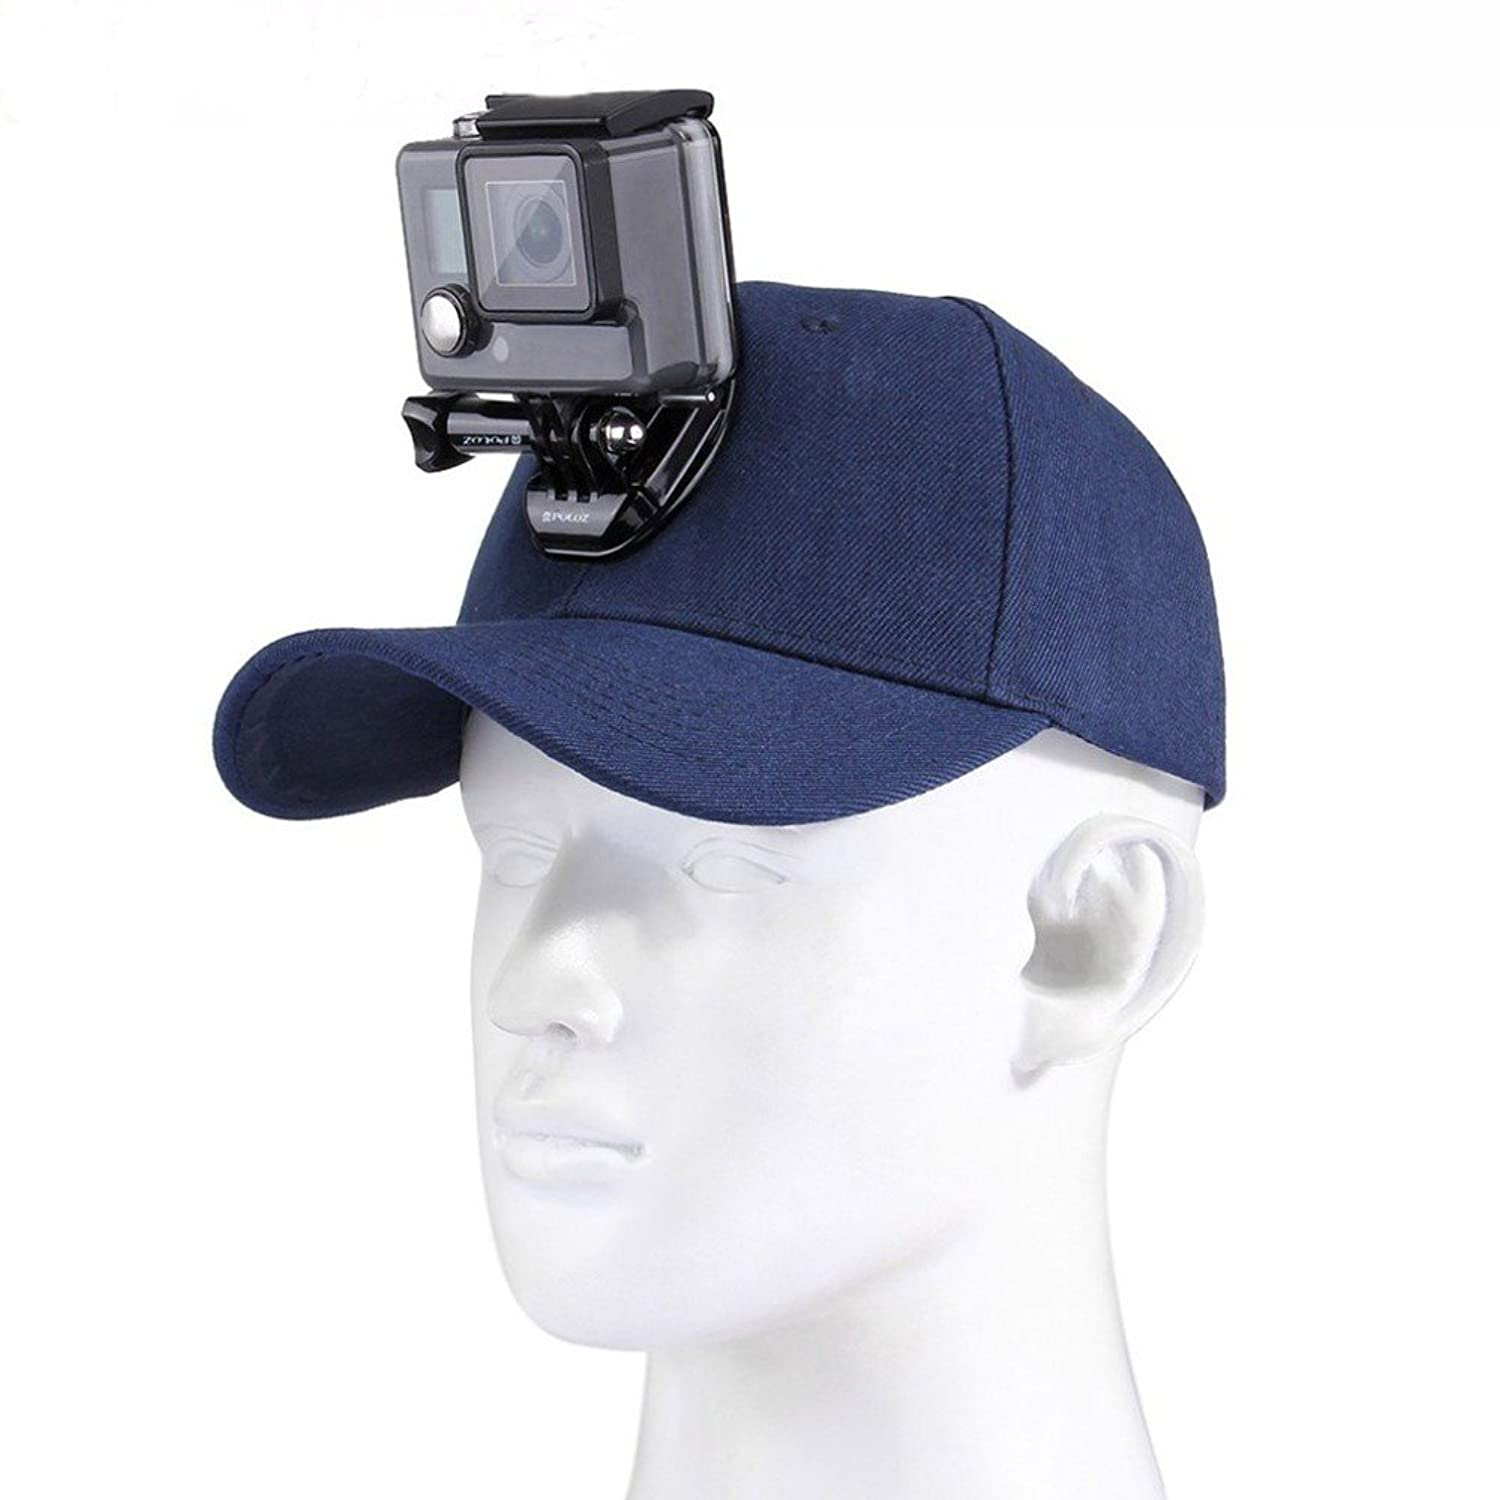 JointVictory Sun Hat with J-Hook Buckle Mount & 1/4 Screw for All GoPro Session Hero 6 5 4 3 2 1, SJCAM and Xiaoyi Cameras (Blue)